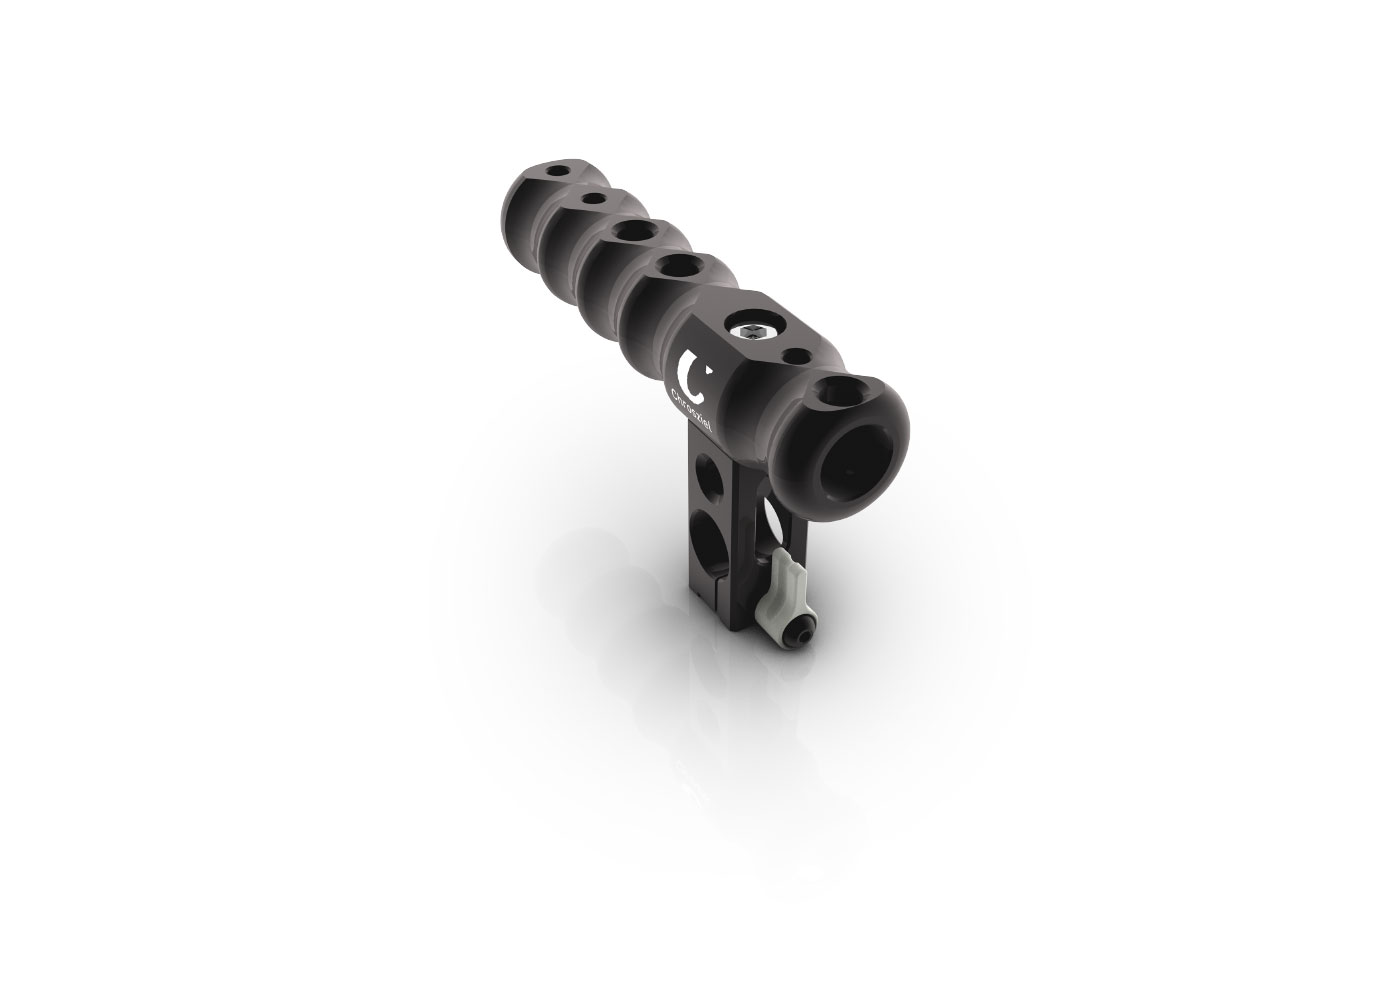 Handle for Chrosziel Camera Cage Systems